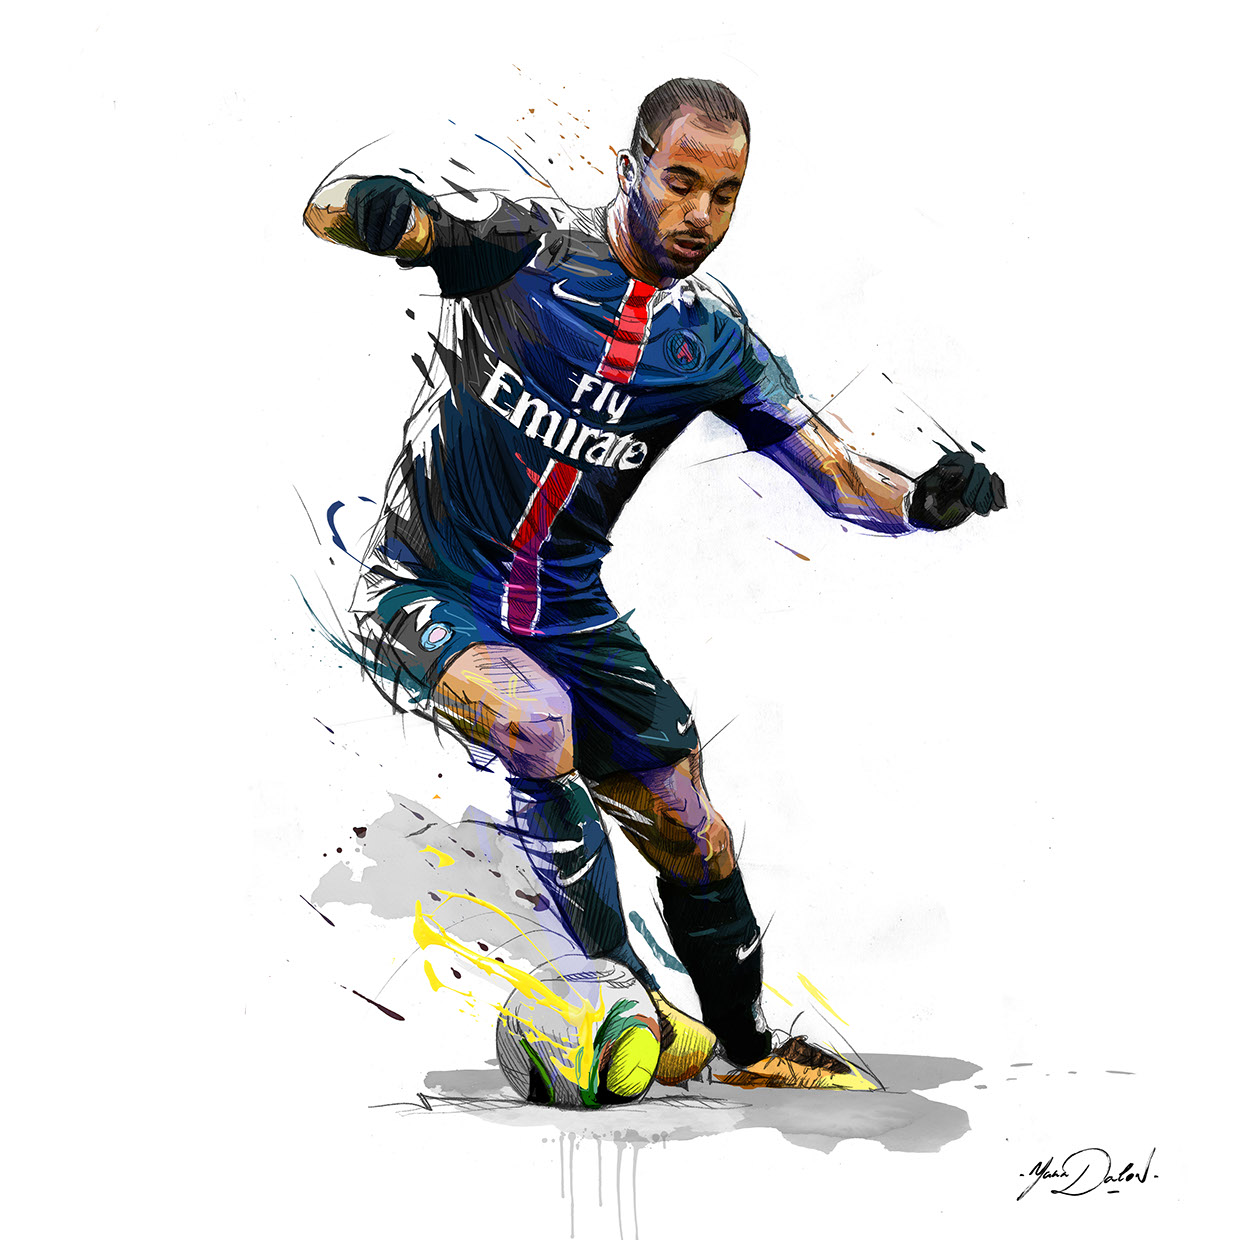 Soccer Players: Yann Dalon's Football Portraits